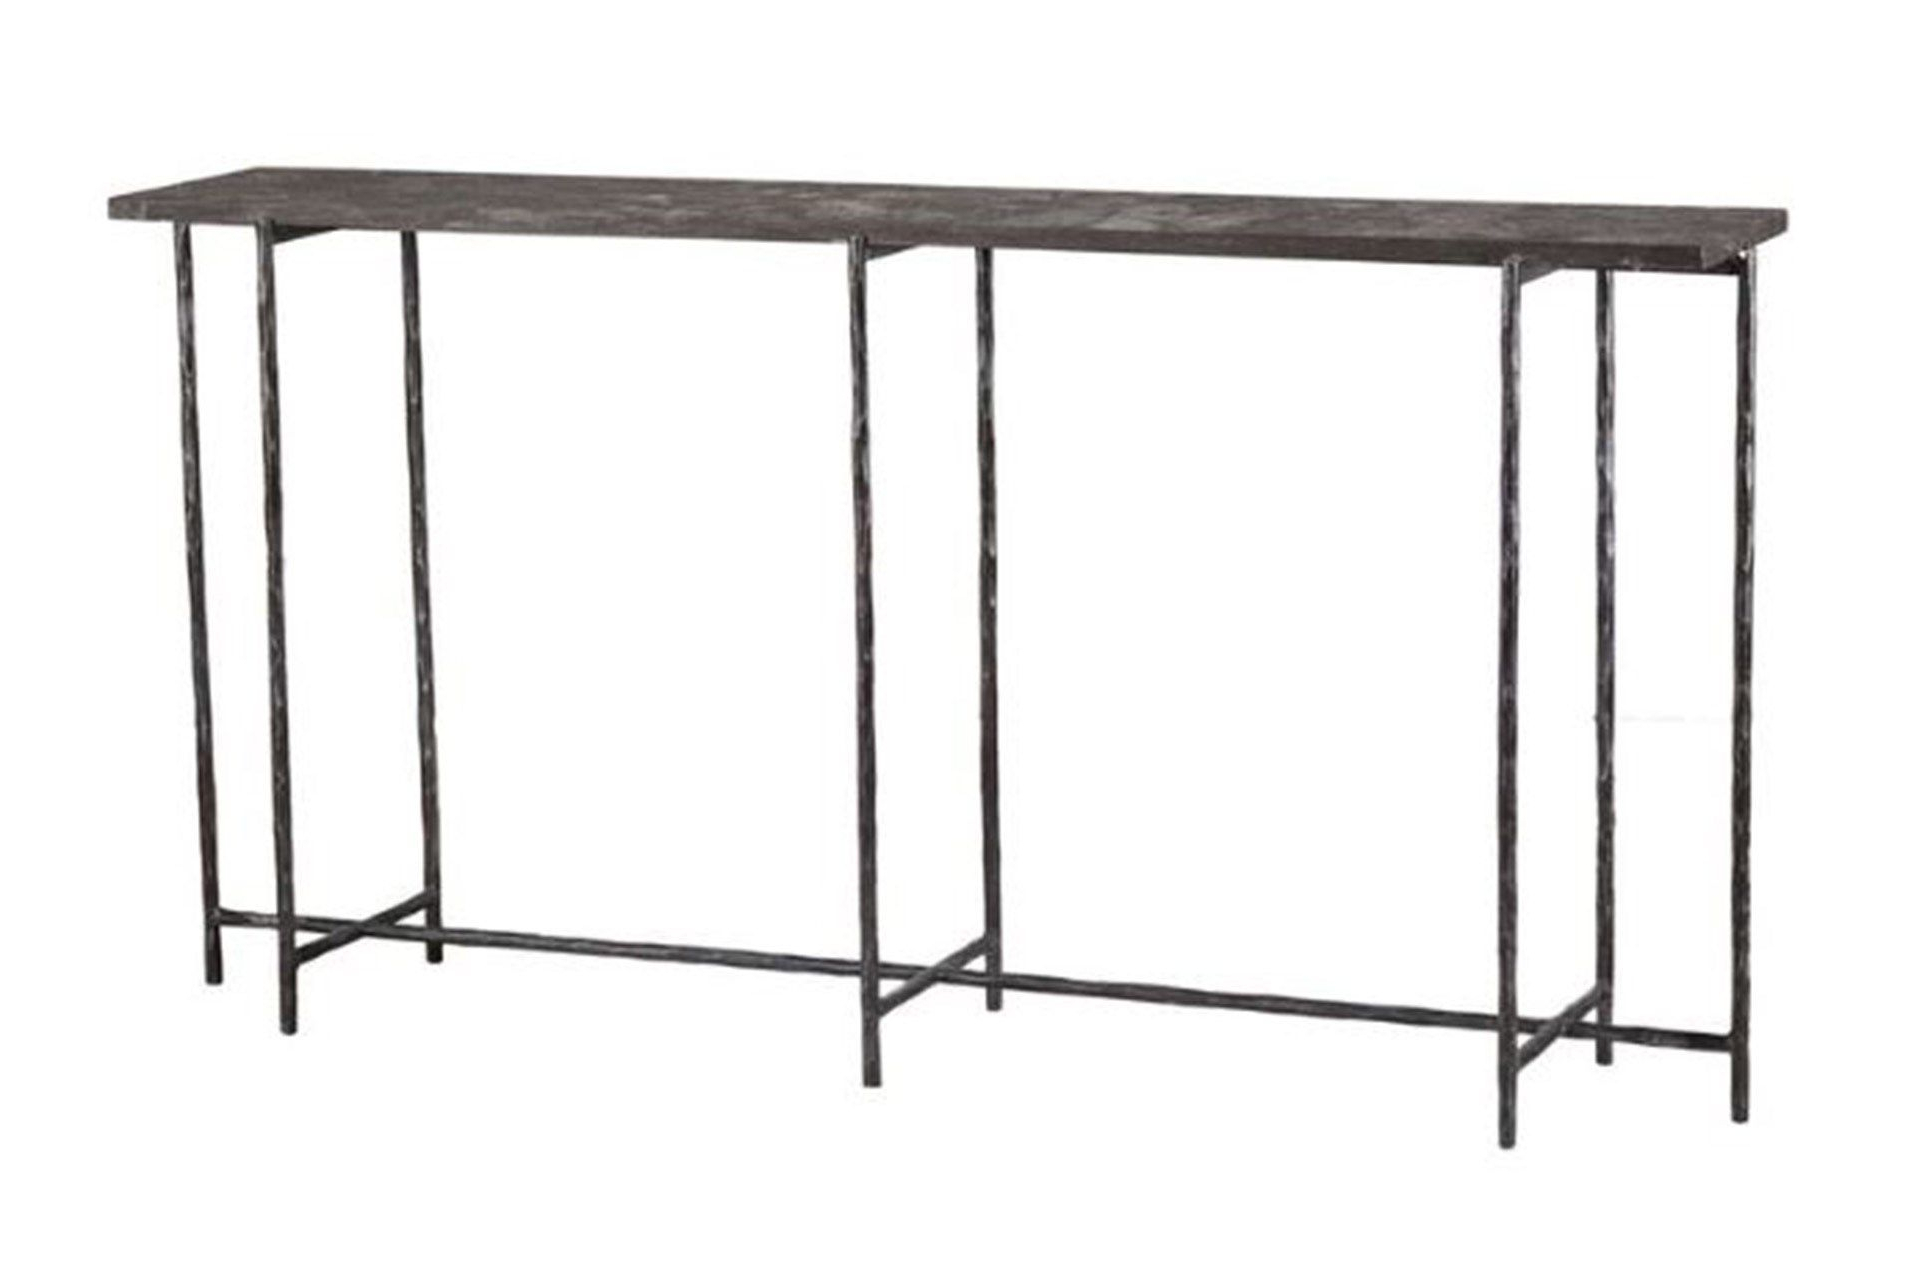 Cast Iron 60 Inch Console Table W/ Stone In 2018 | Tahoe – Living Intended For Silviano 60 Inch Iron Console Tables (View 7 of 20)